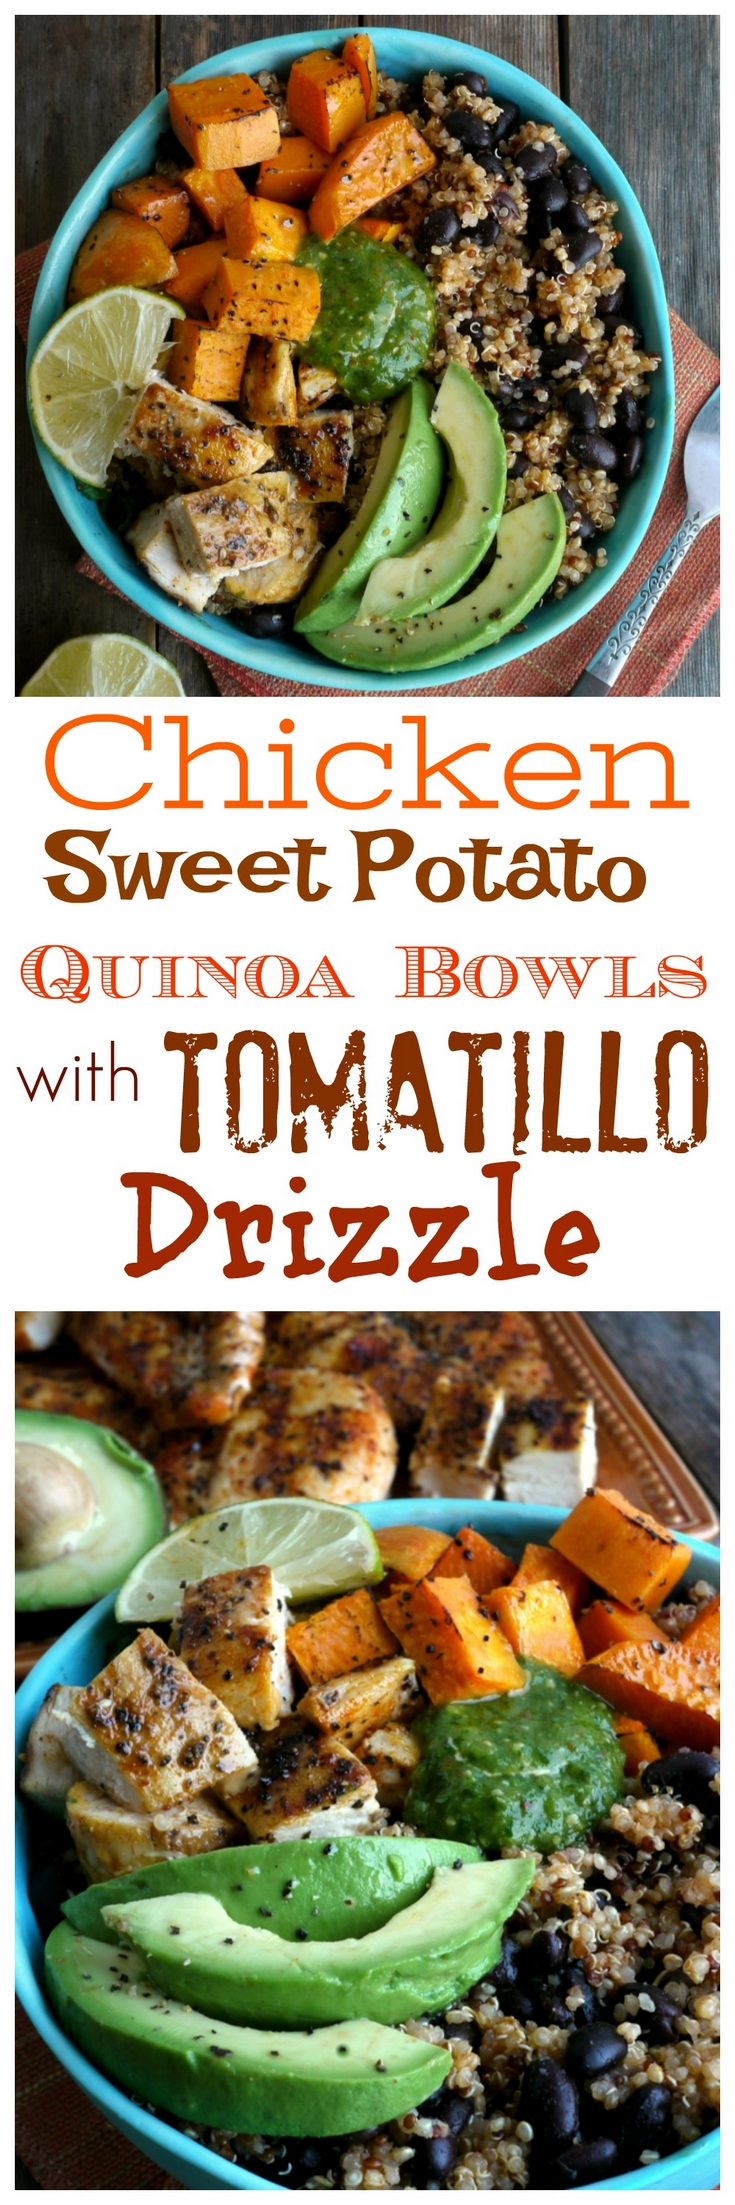 Healthy and delicious, this Chicken, Sweet Potato and Quinoa Bowl with Roasted Tomatillo Drizzle is perfect for lunch and dinner from NoblePig.com. via @cmpollak1